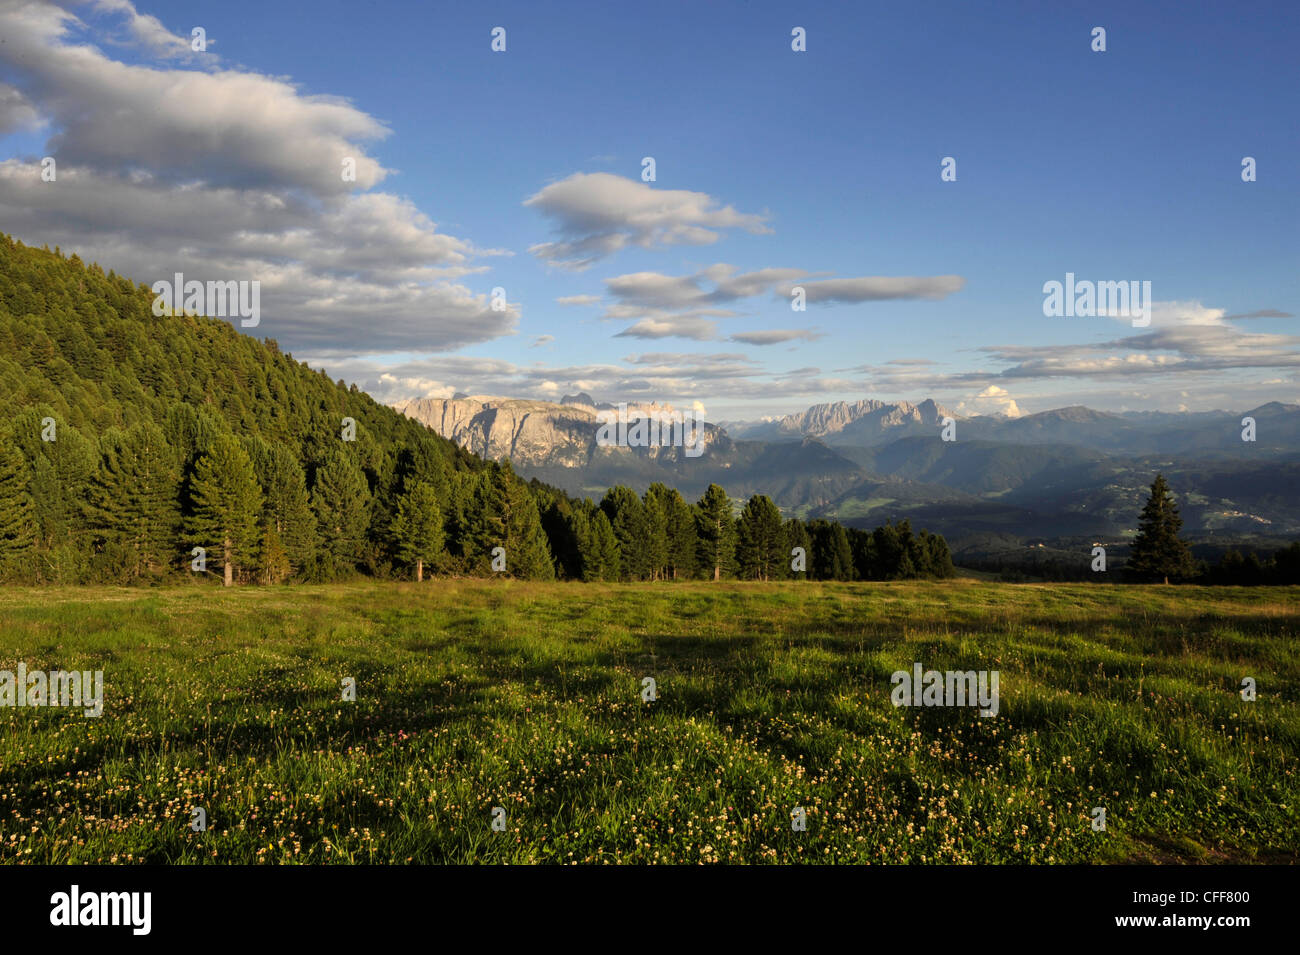 Alp meadow in the mountains, Alto Adige, UNESCO World Nature Site, South Tyrol, Italy - Stock Image